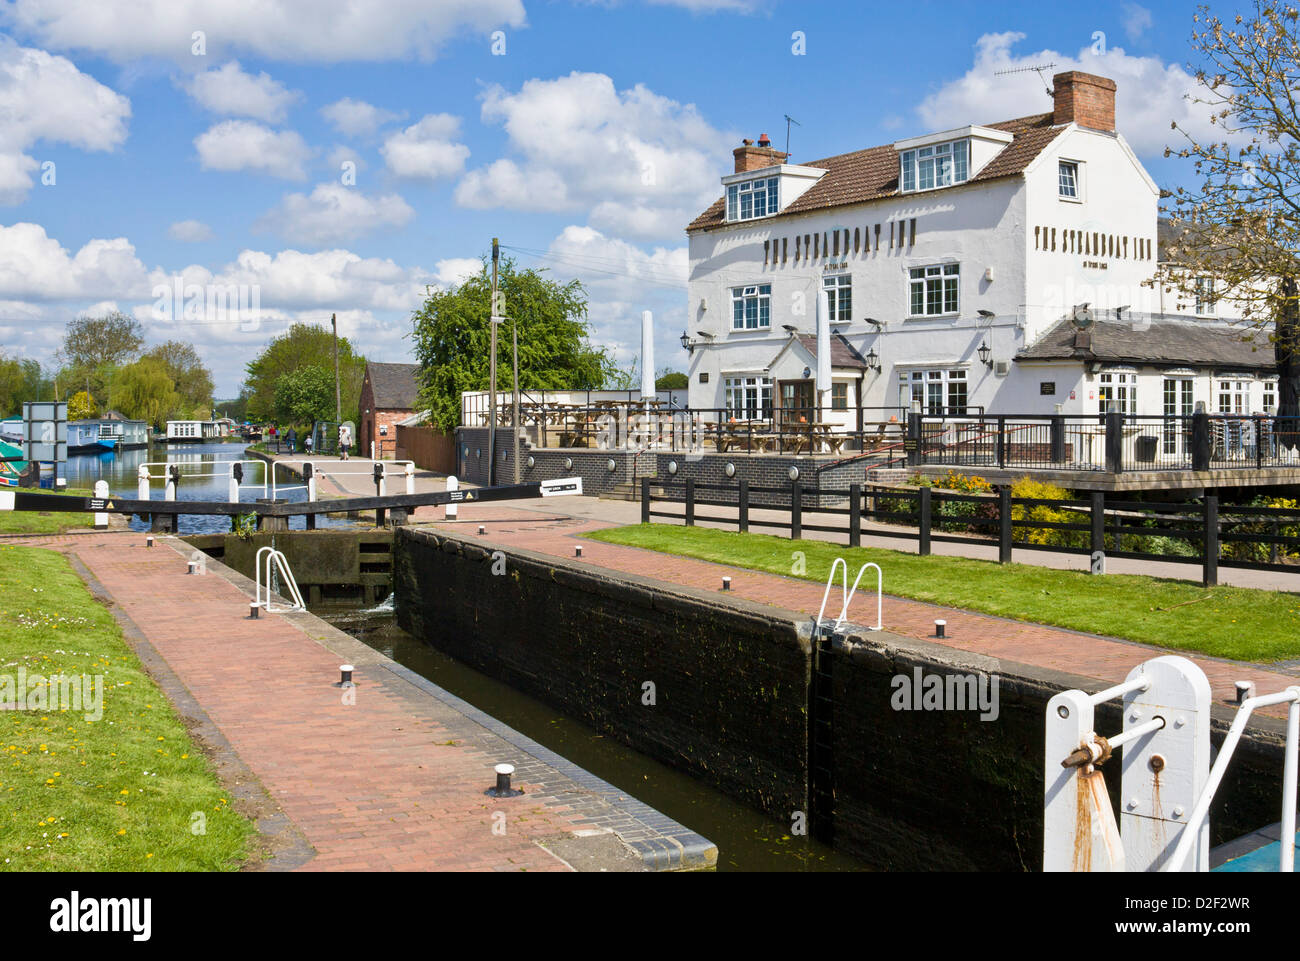 The Steamboat Inn at Trent Lock, Sawley near Long Eaton, Derbyshire, England, GB, UK, EU, Europe - Stock Image